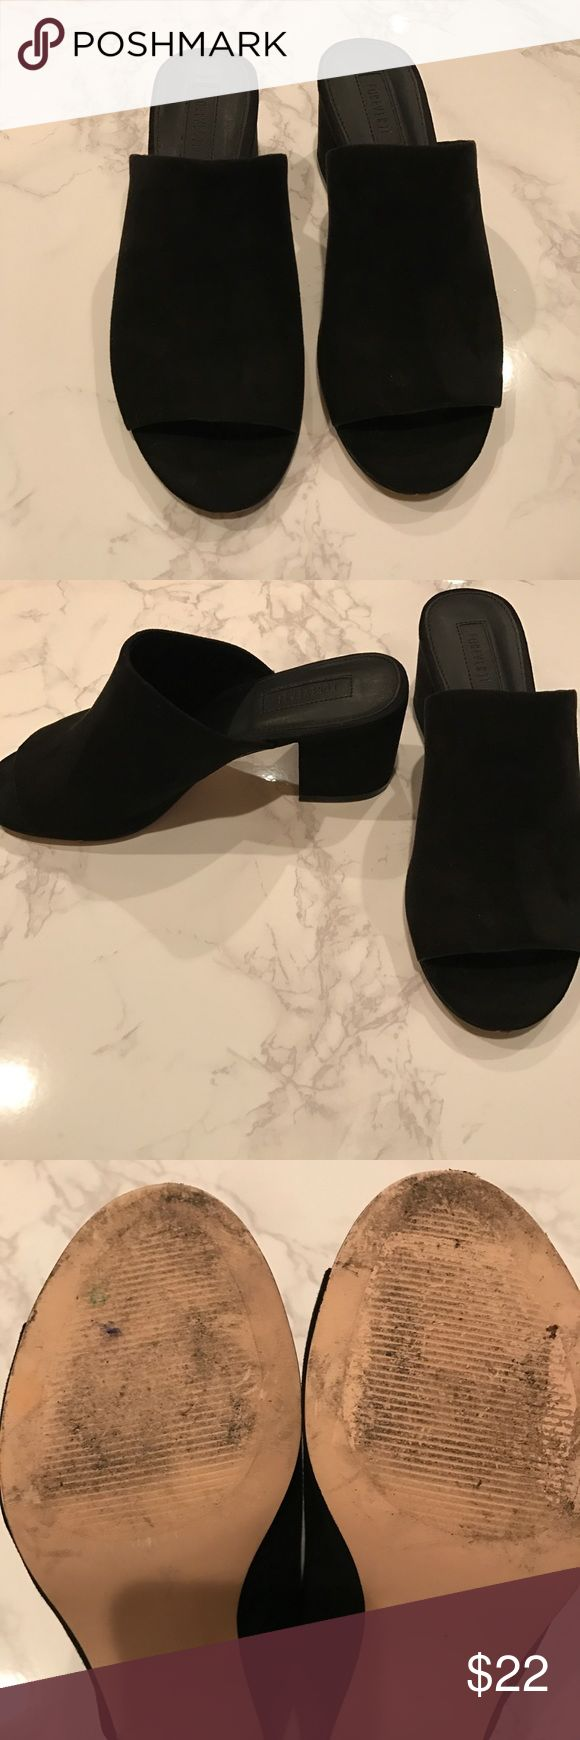 Black open toe mules size 7 Forever 21 black open toe mules size 7 Shoes Mules & Clogs